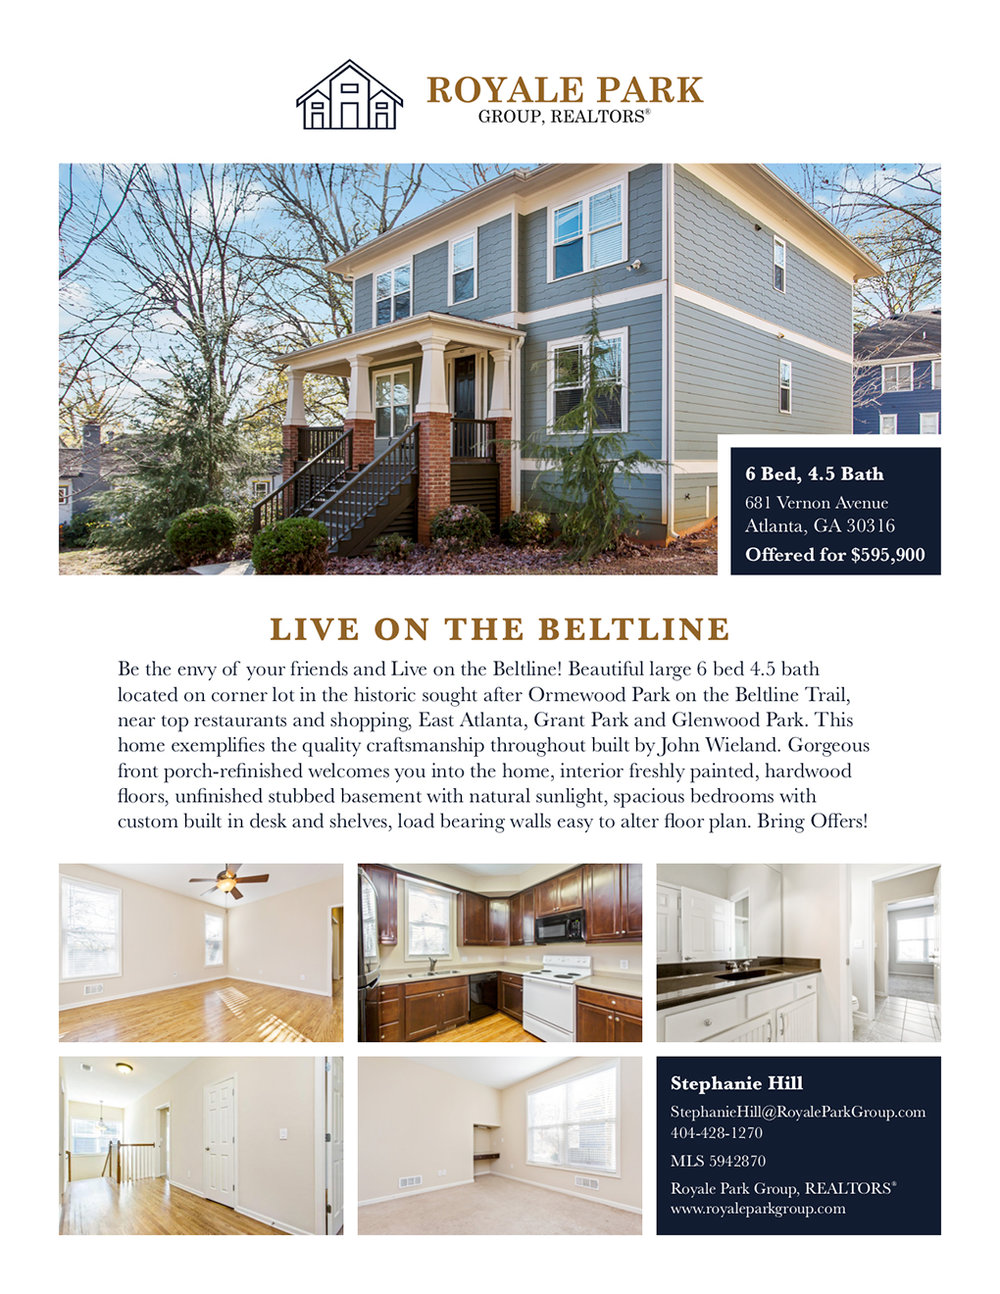 Real Estate Listing - To promote a house listing by Royale Park Group.